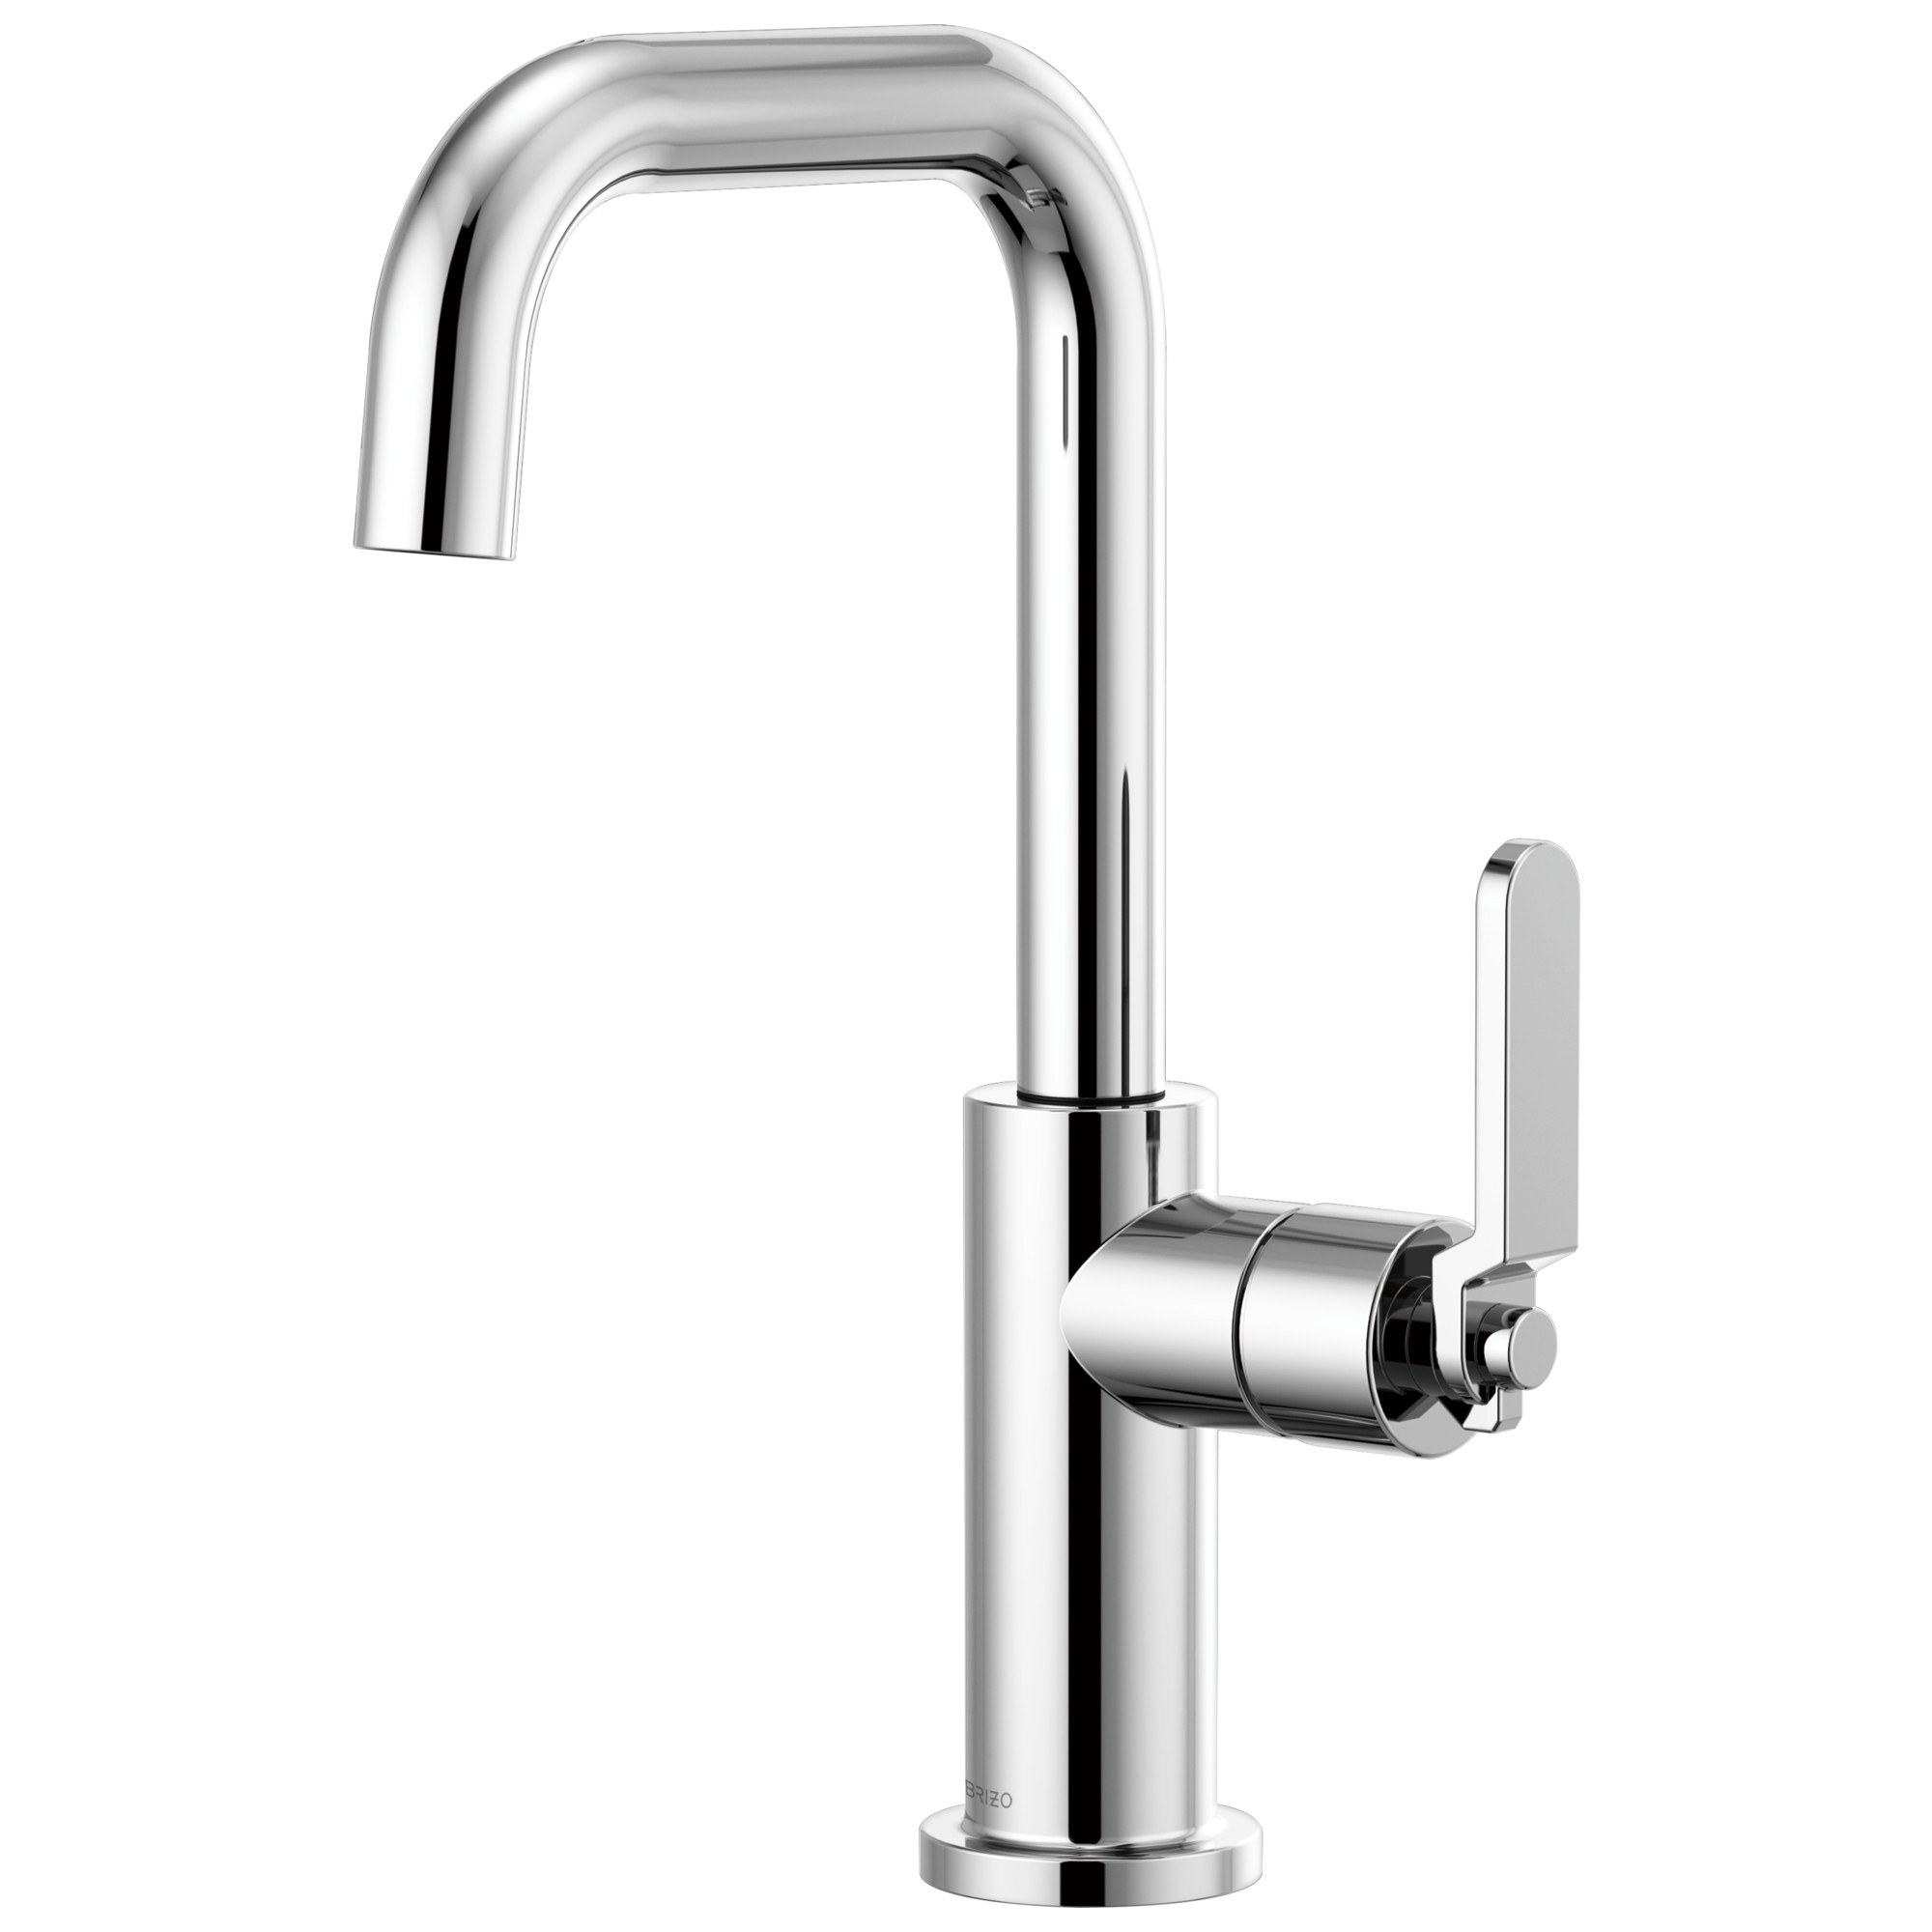 Brizo 61054LF-PC Litze Bar Faucet with Square Spout and Industrial Handle - Chrome